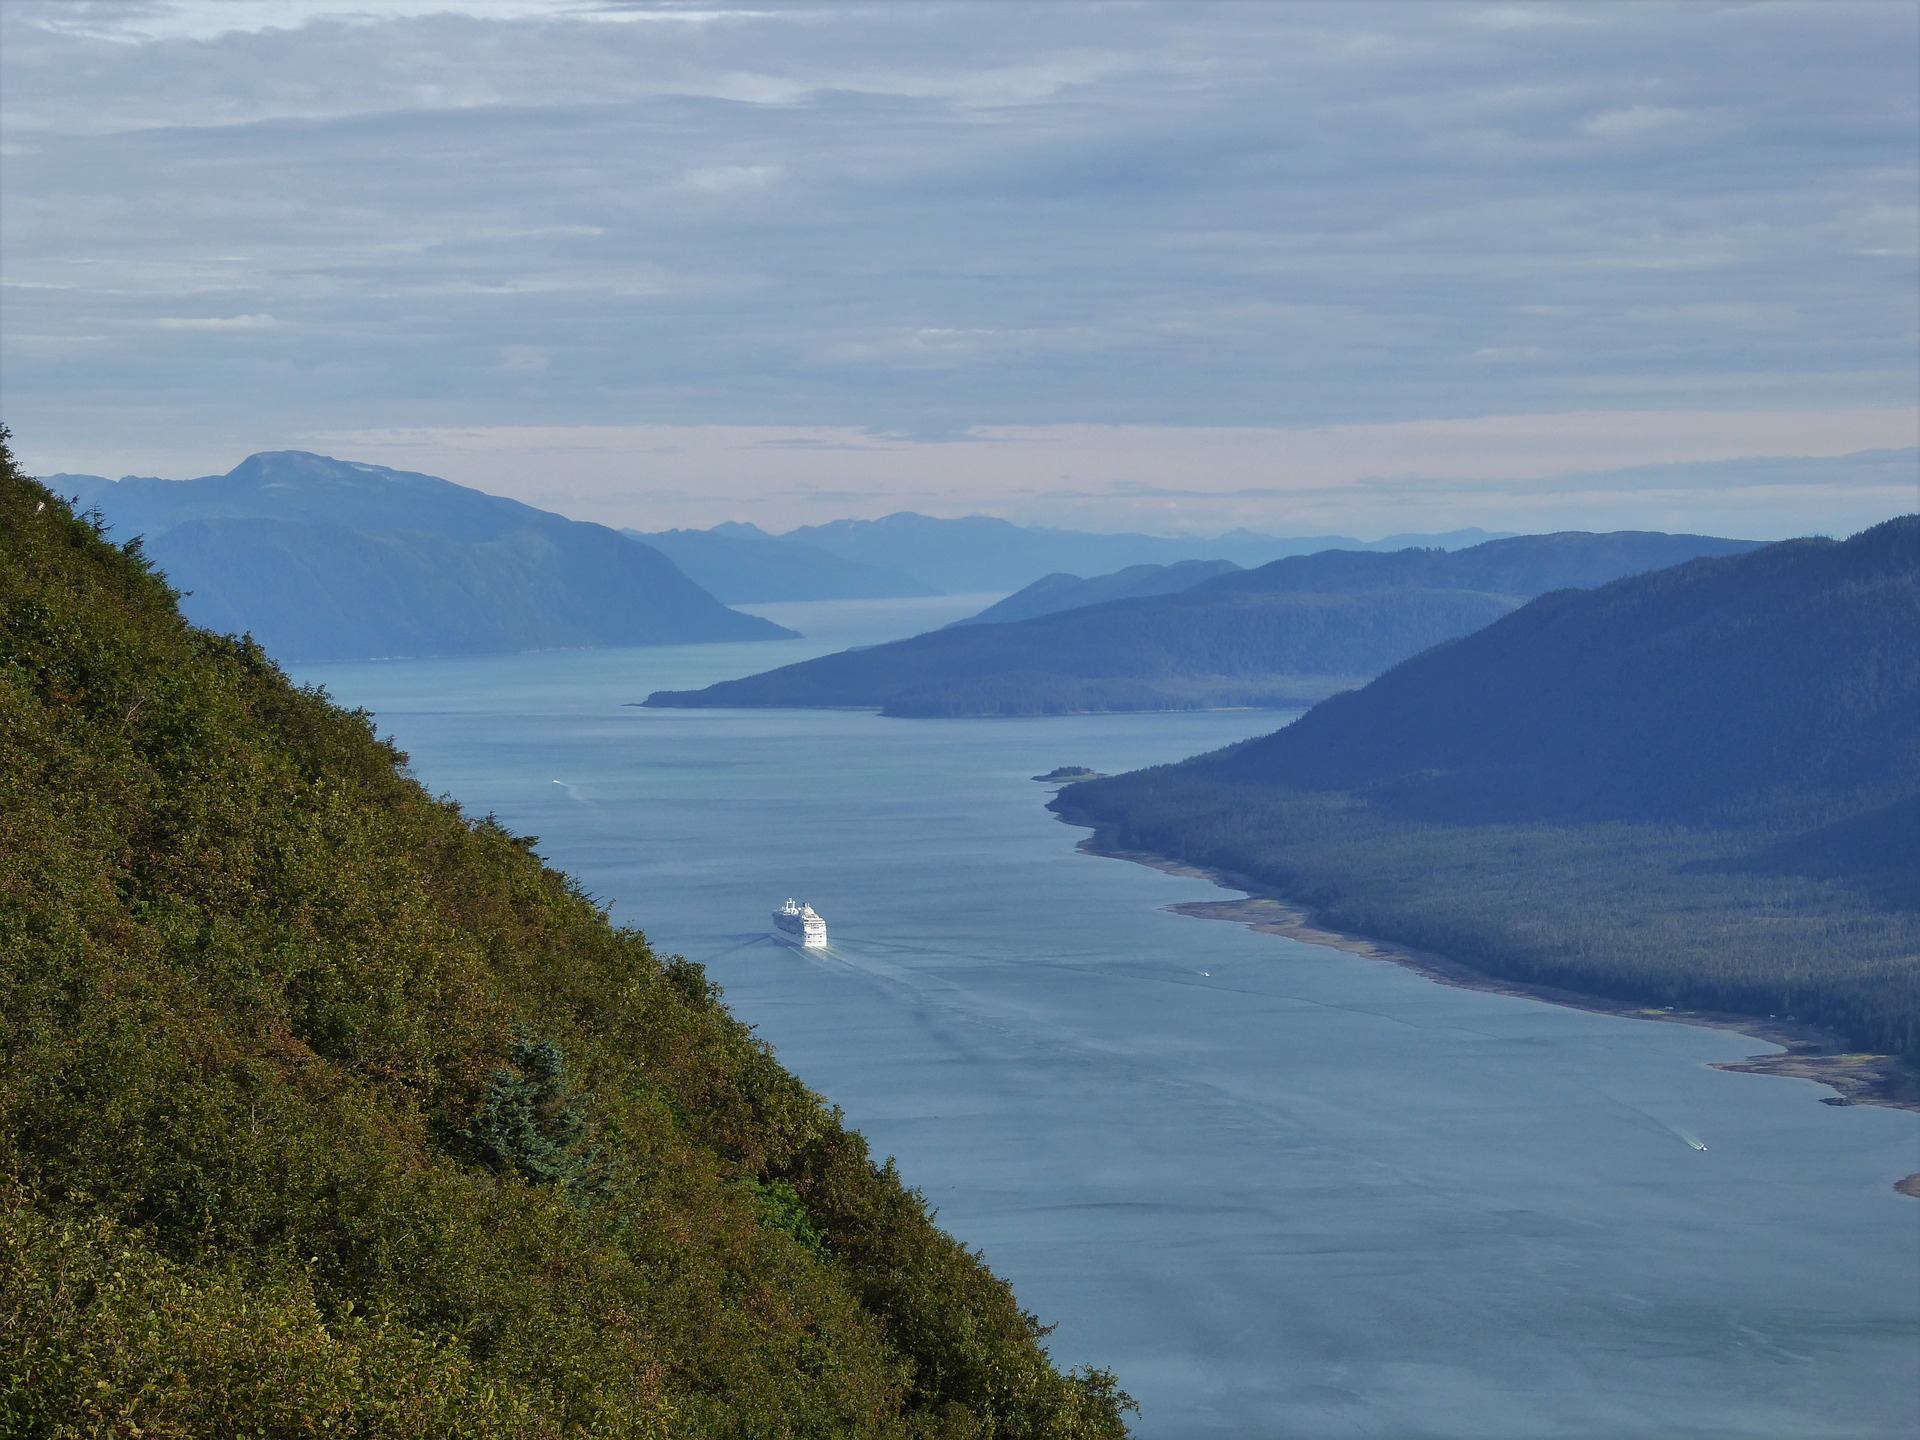 alaska cruise packing list ship in a distance